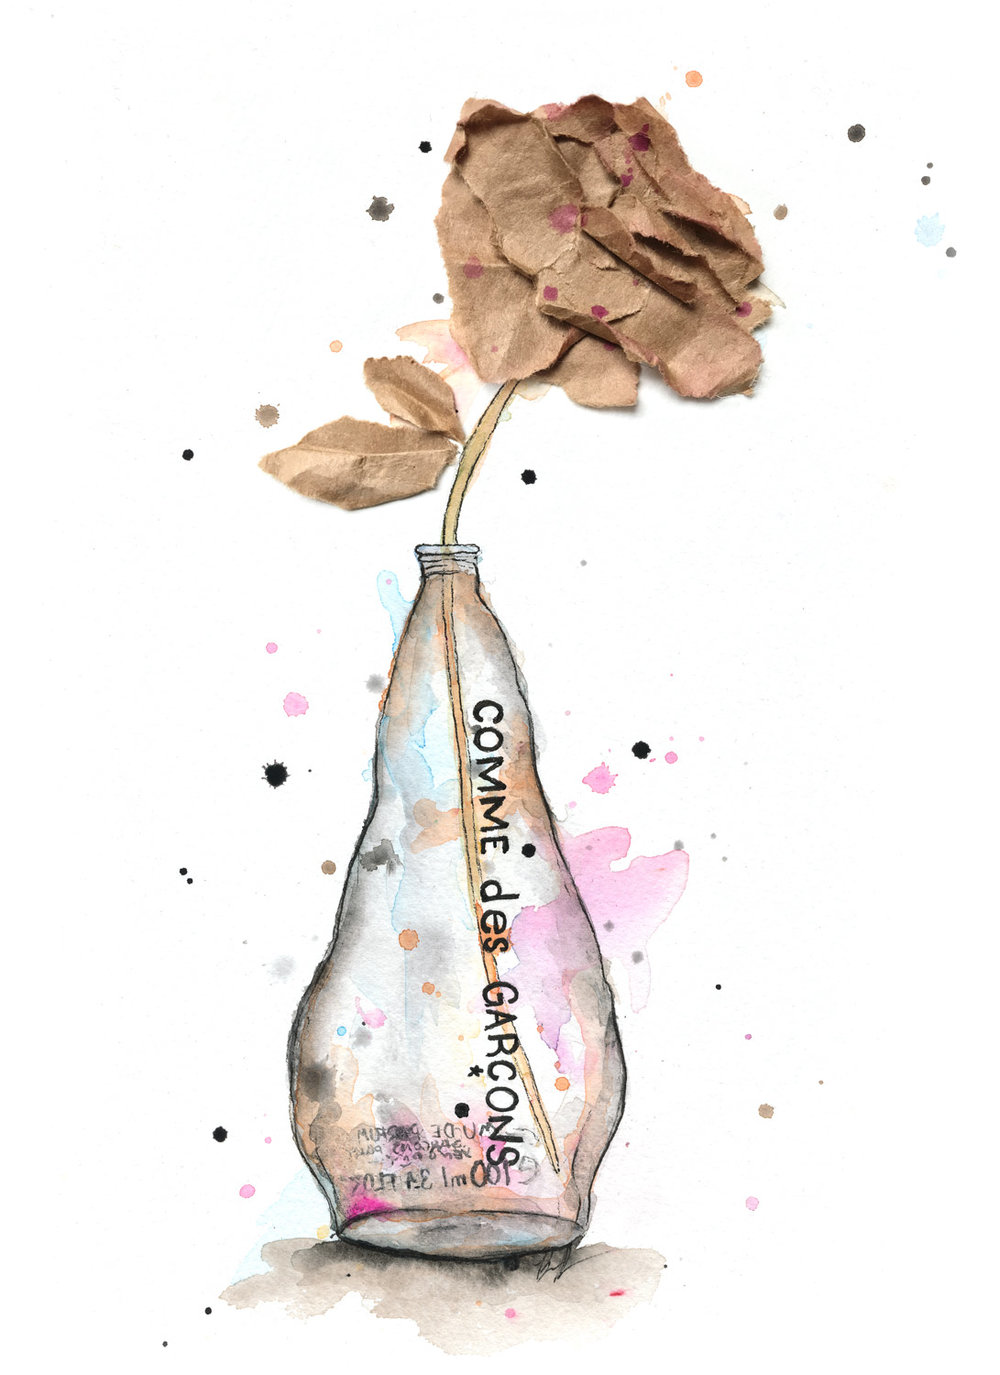 Benjamin-Edward-Comme-des-Garcons-eau-de-Parfum-Perfume-Fall-RTW-Runway-watercolour-illustration.jpg